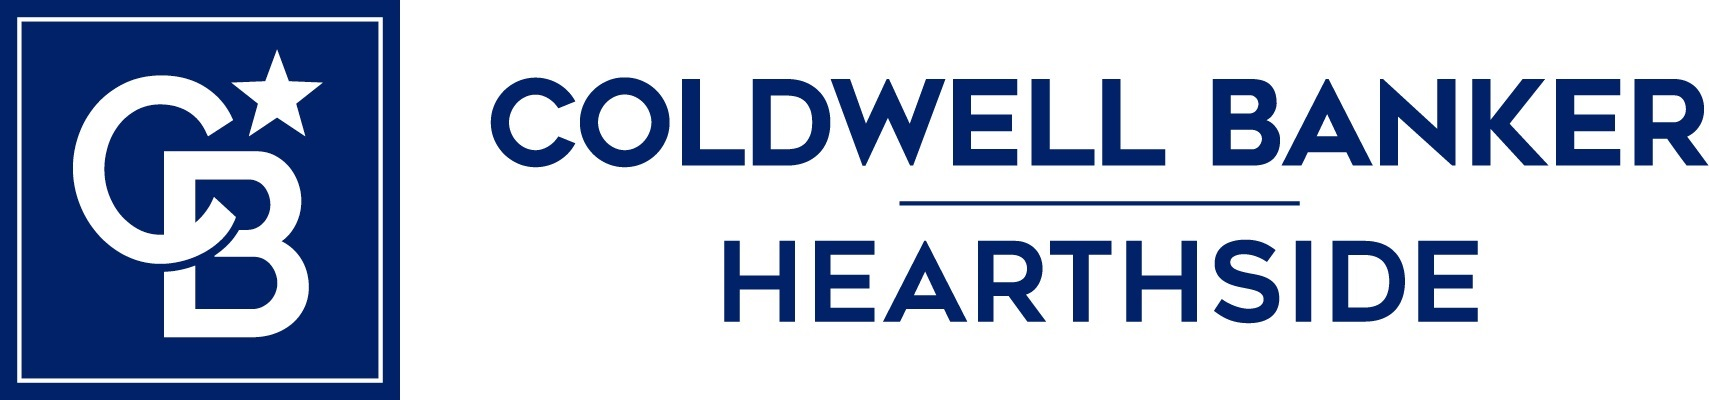 Don Rowley - Coldwell Banker Hearthside